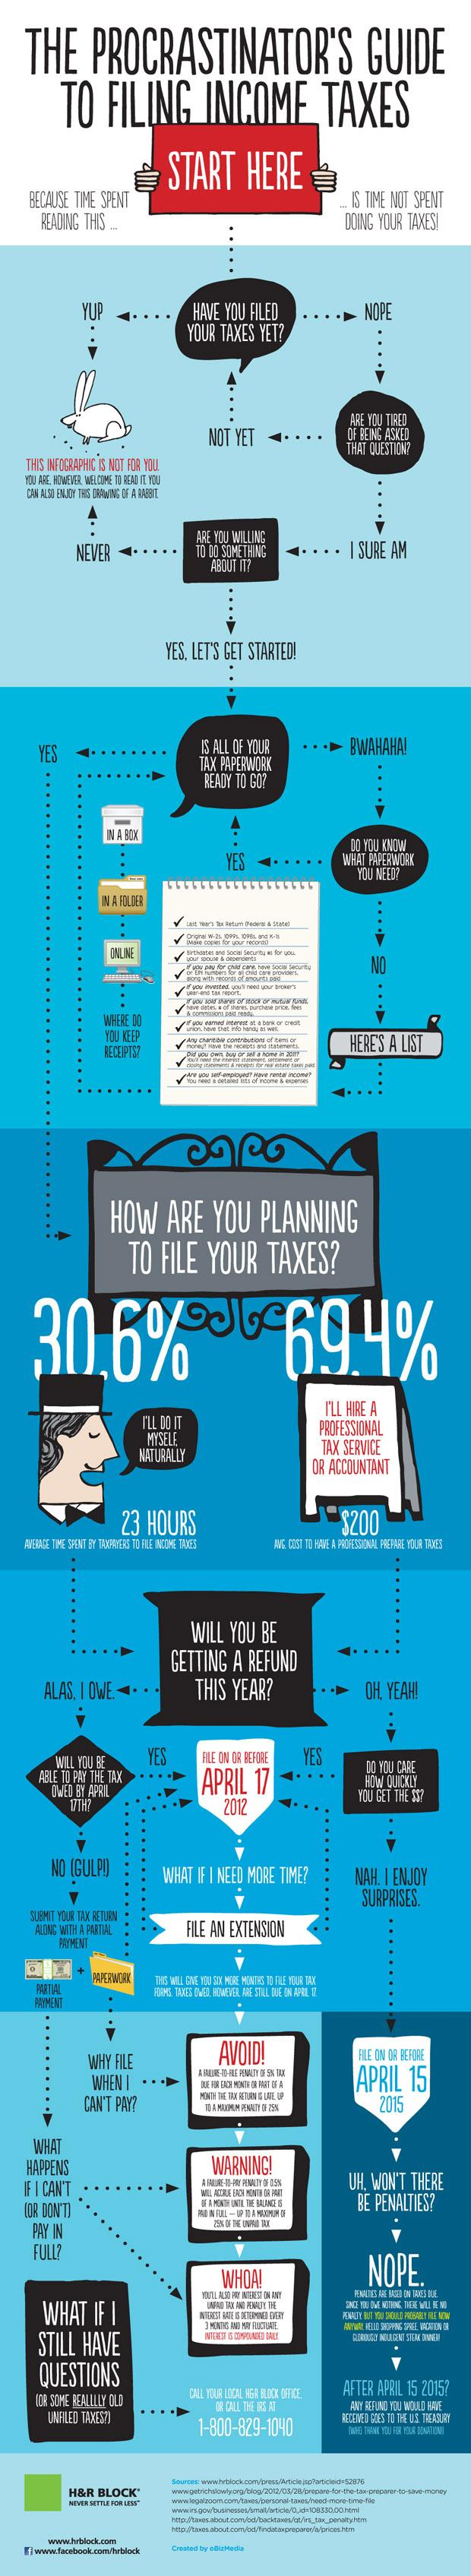 The Procastinator's Guide To Filing Income Tax